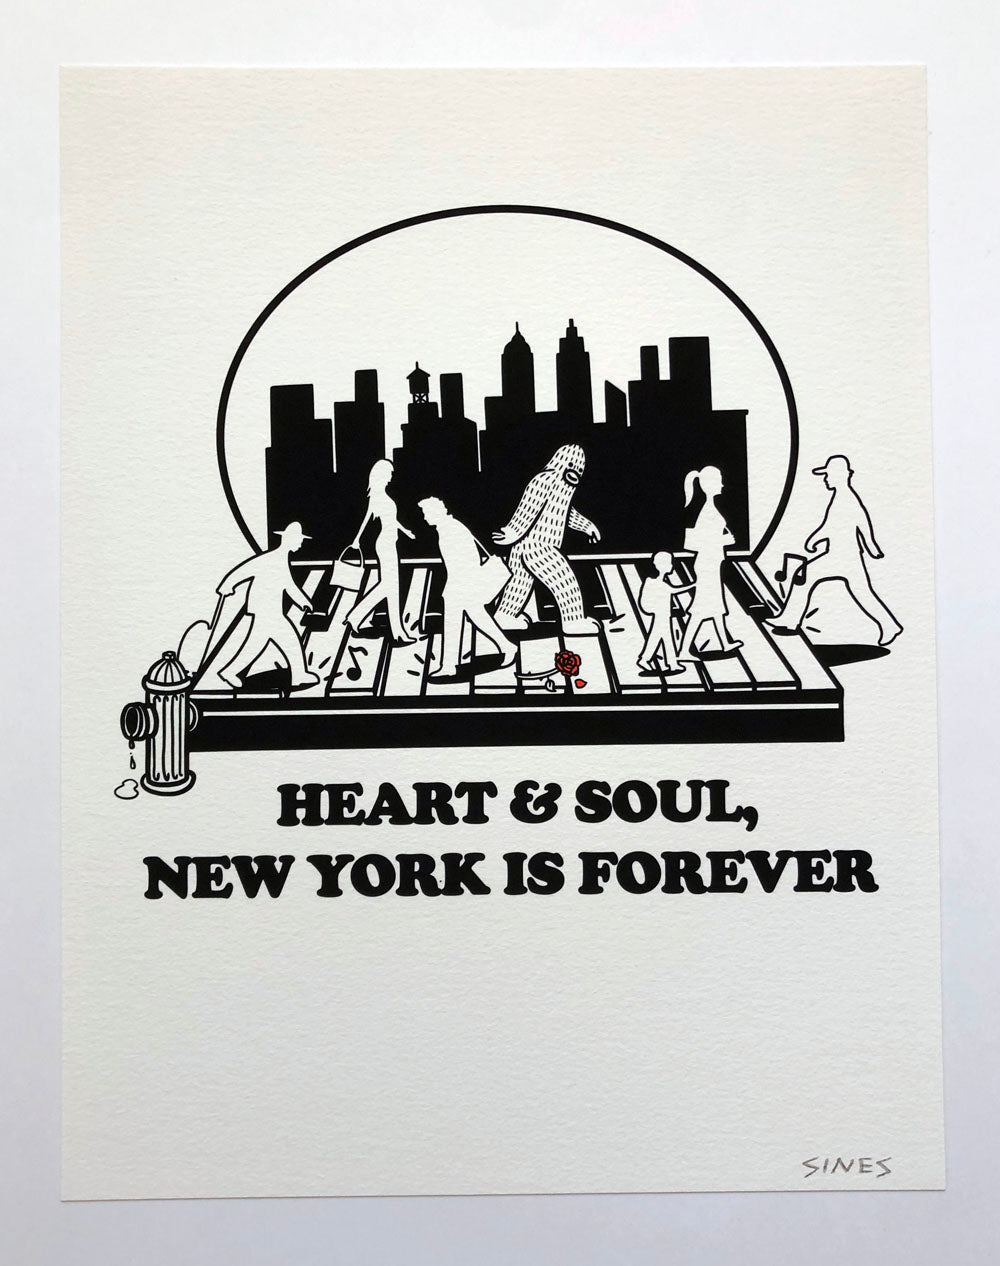 Heart and Soul - 8.5 x 11 inch signed print